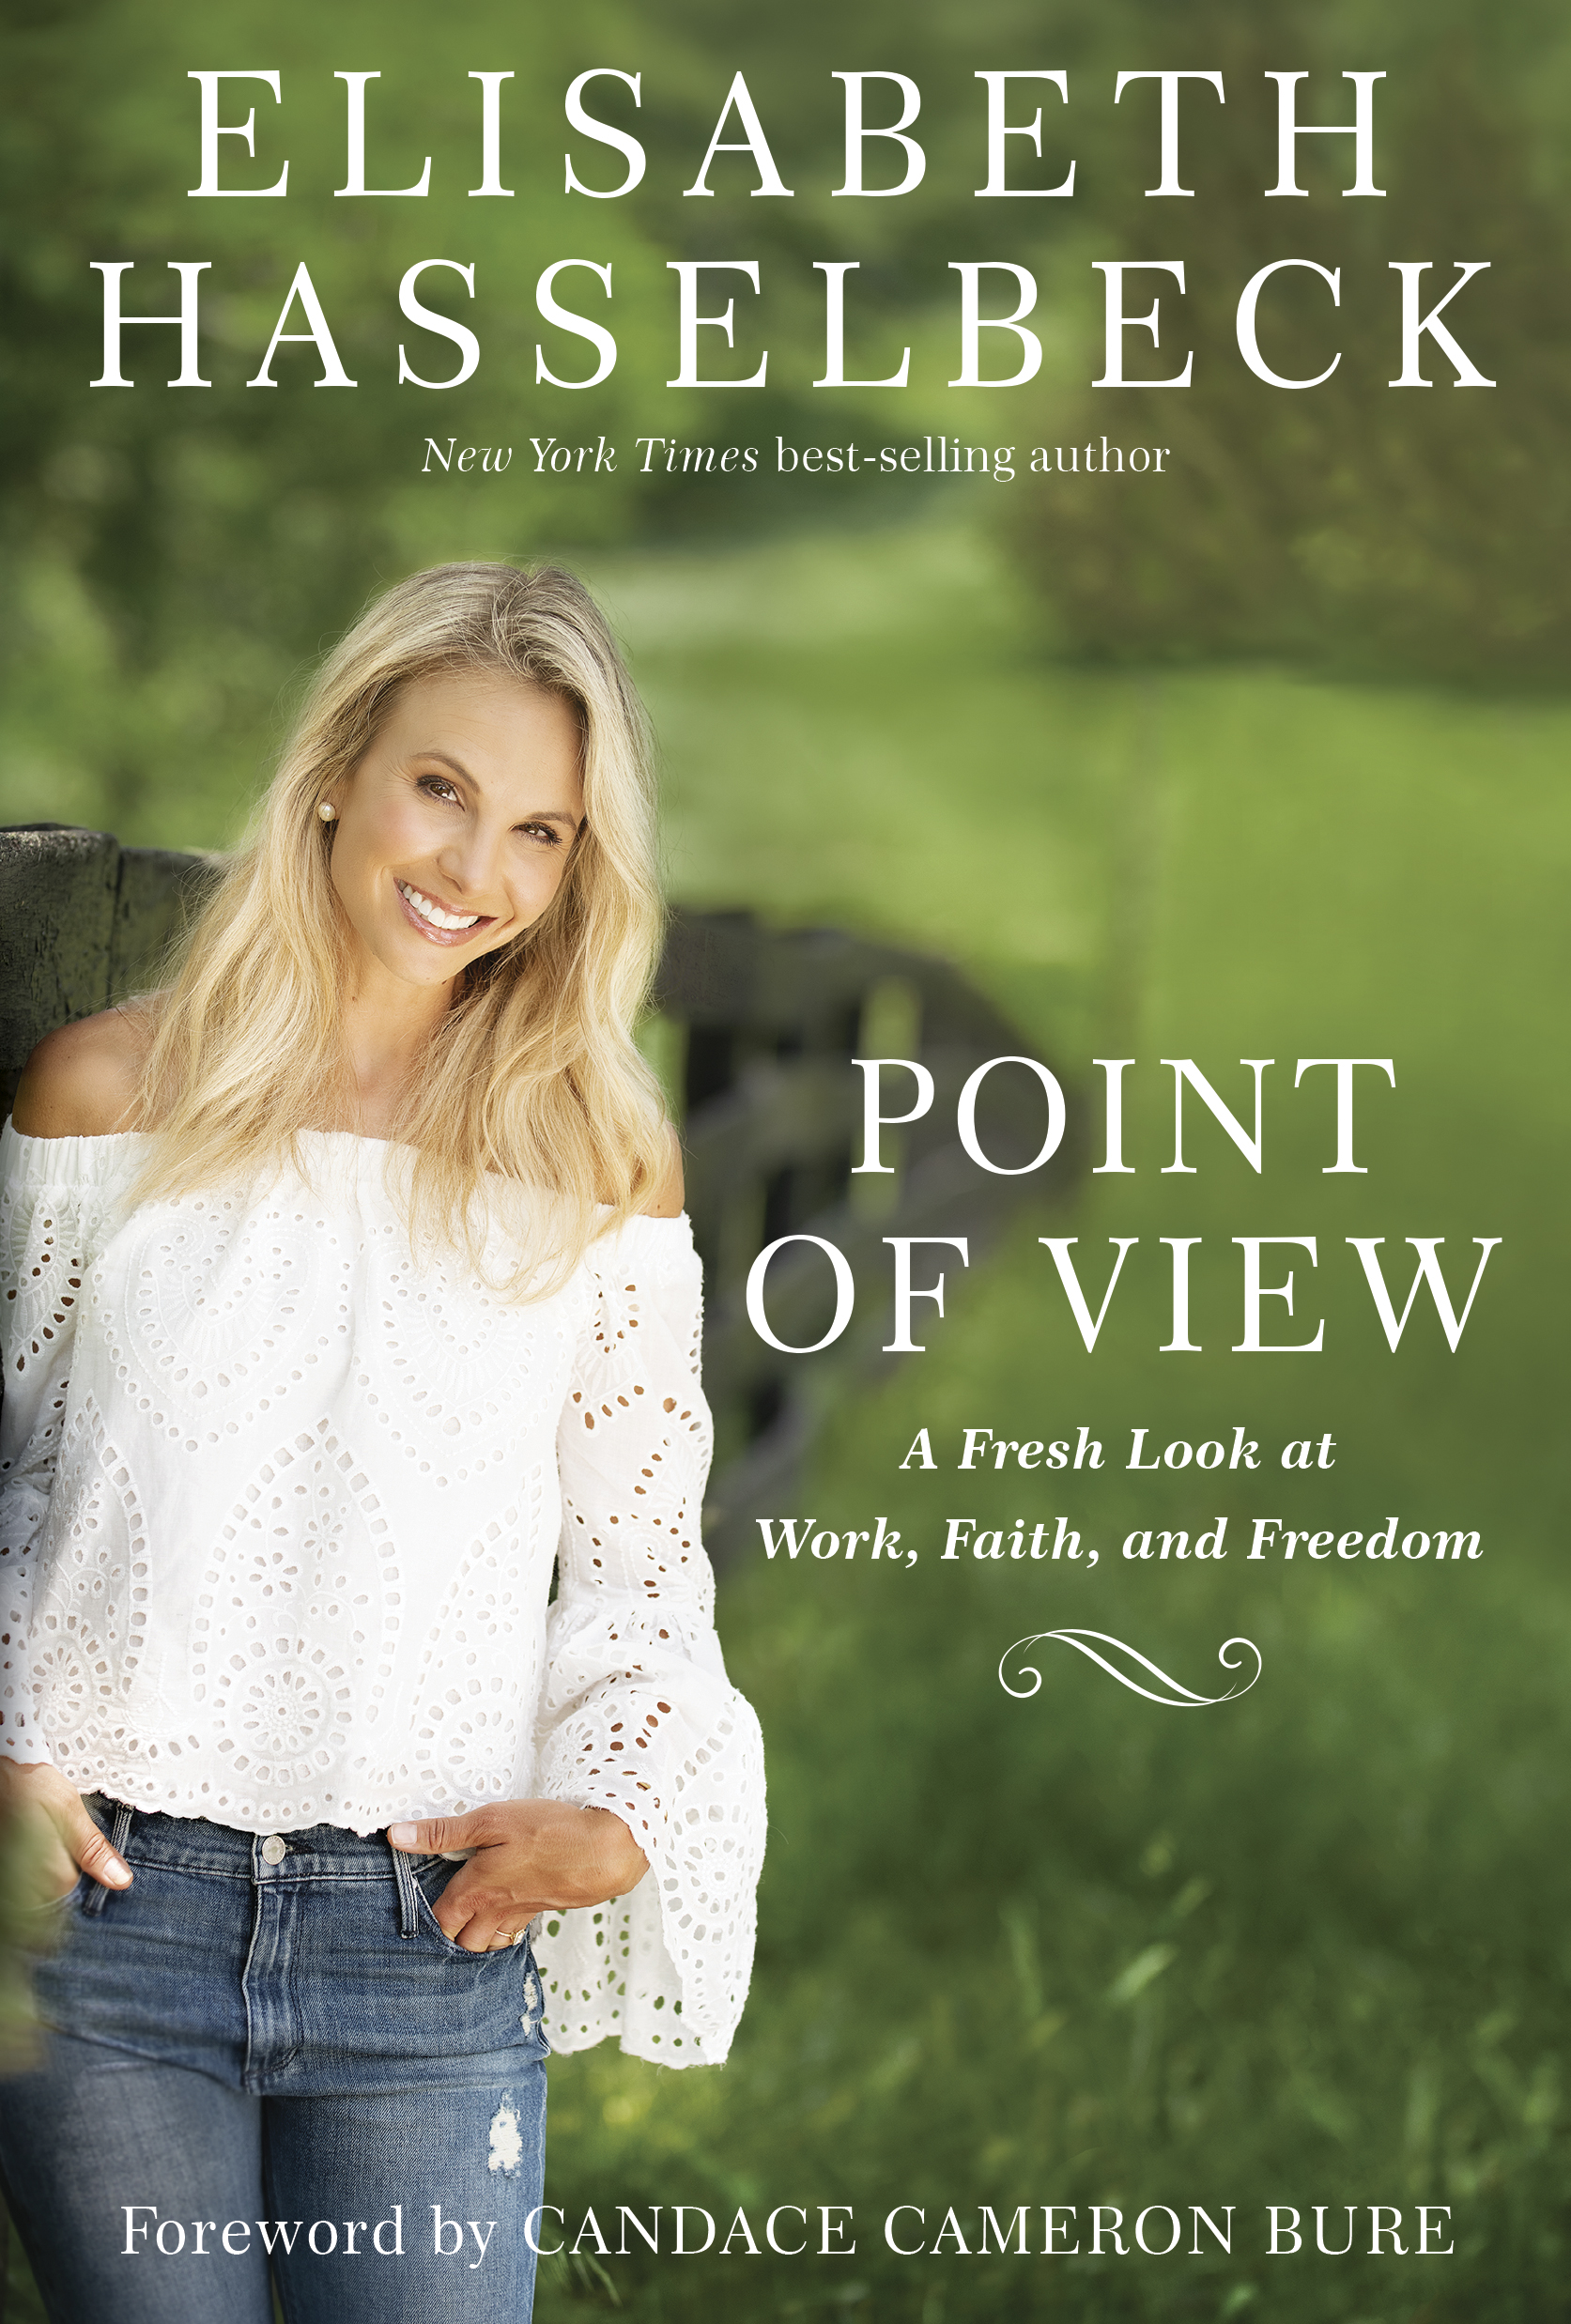 Elisabeth Hasselbeck book, Point of View